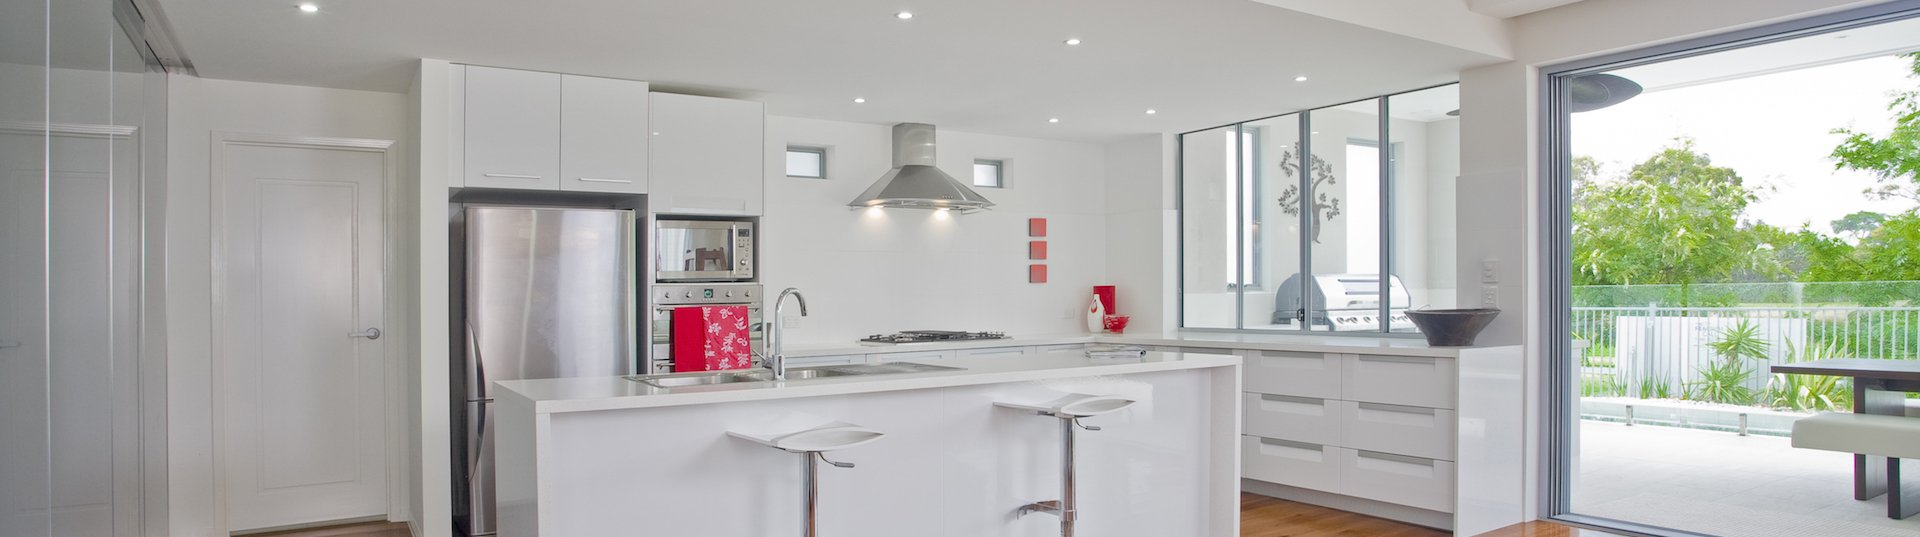 Electrician Victoria Point - Electrician Brisbane - Fuse Contracting